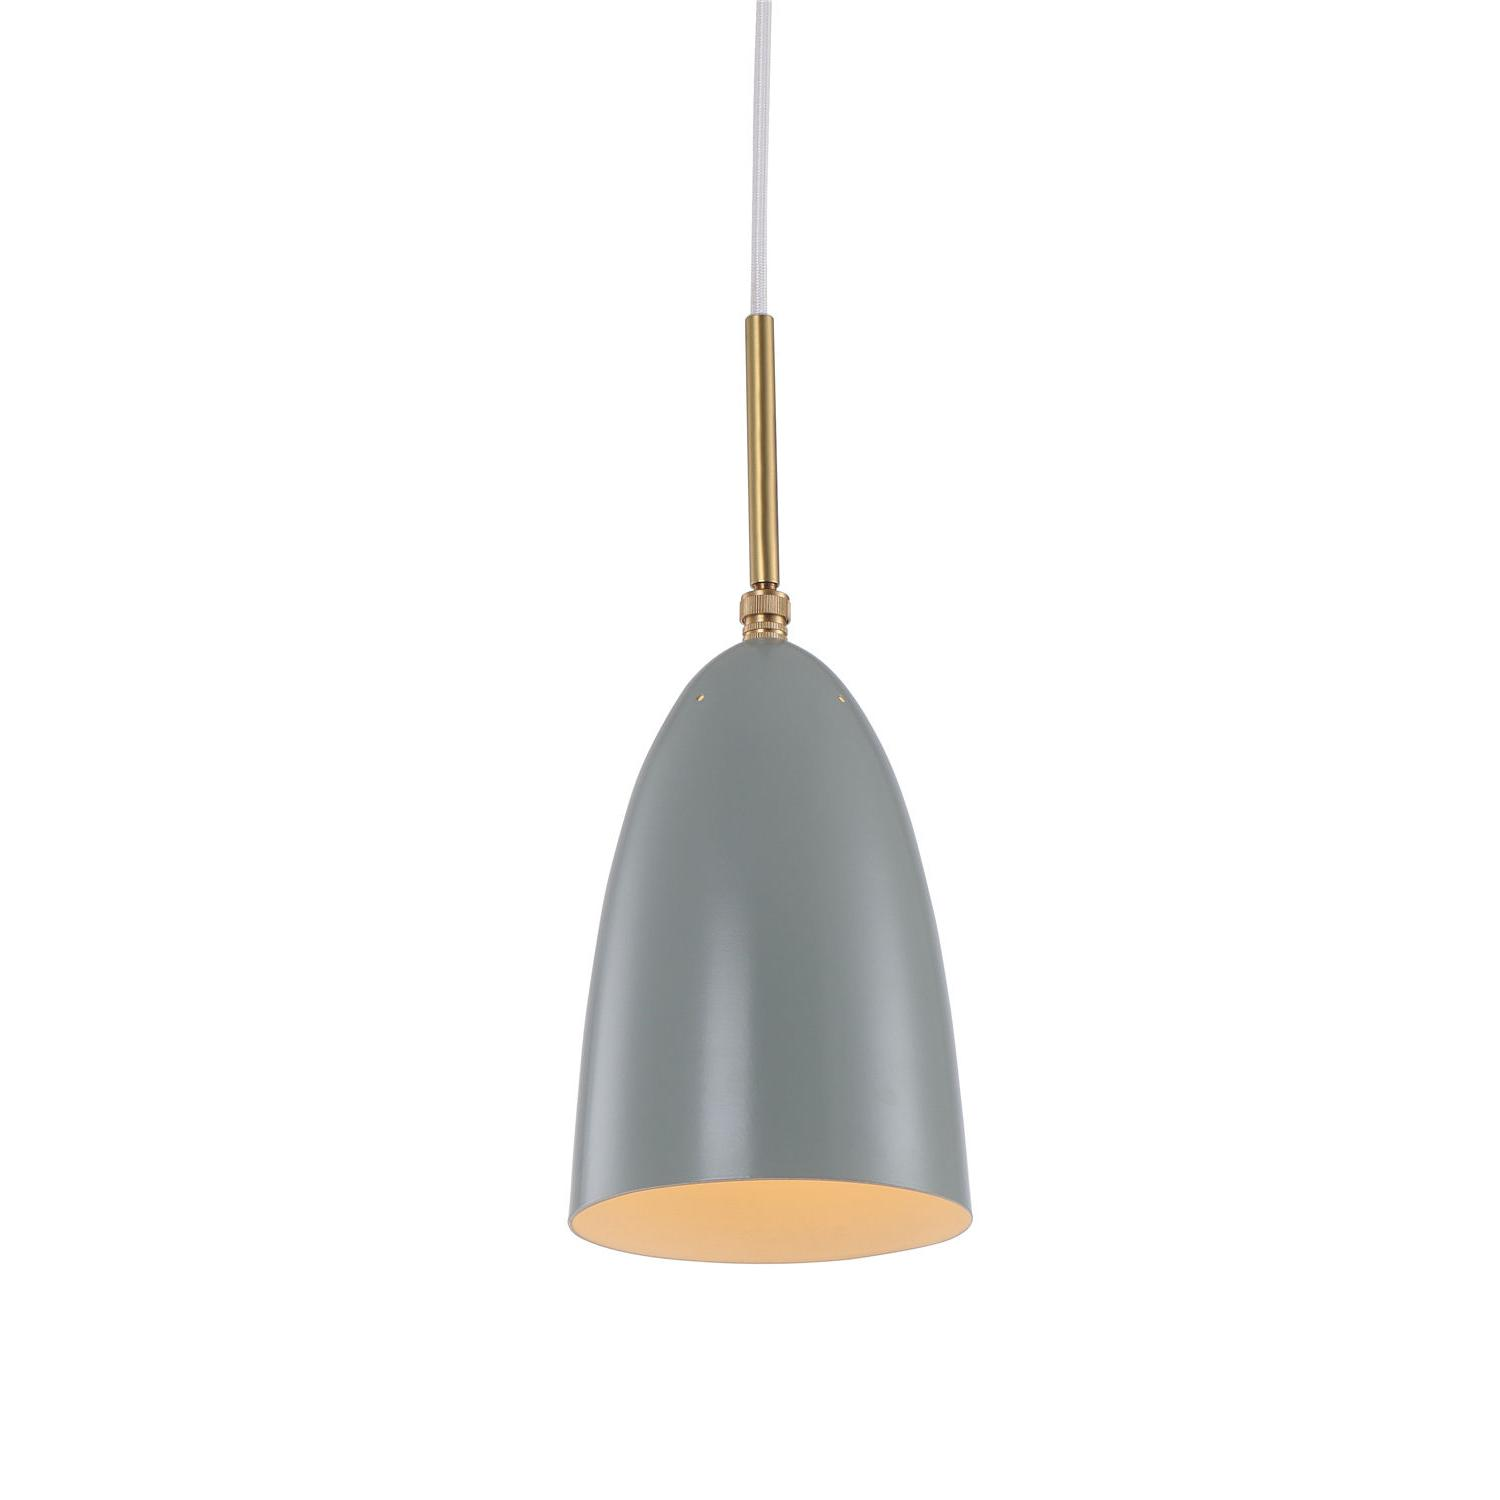 Grashopper pendant lamp Greta M. Grossman Design 8264S-Green gray